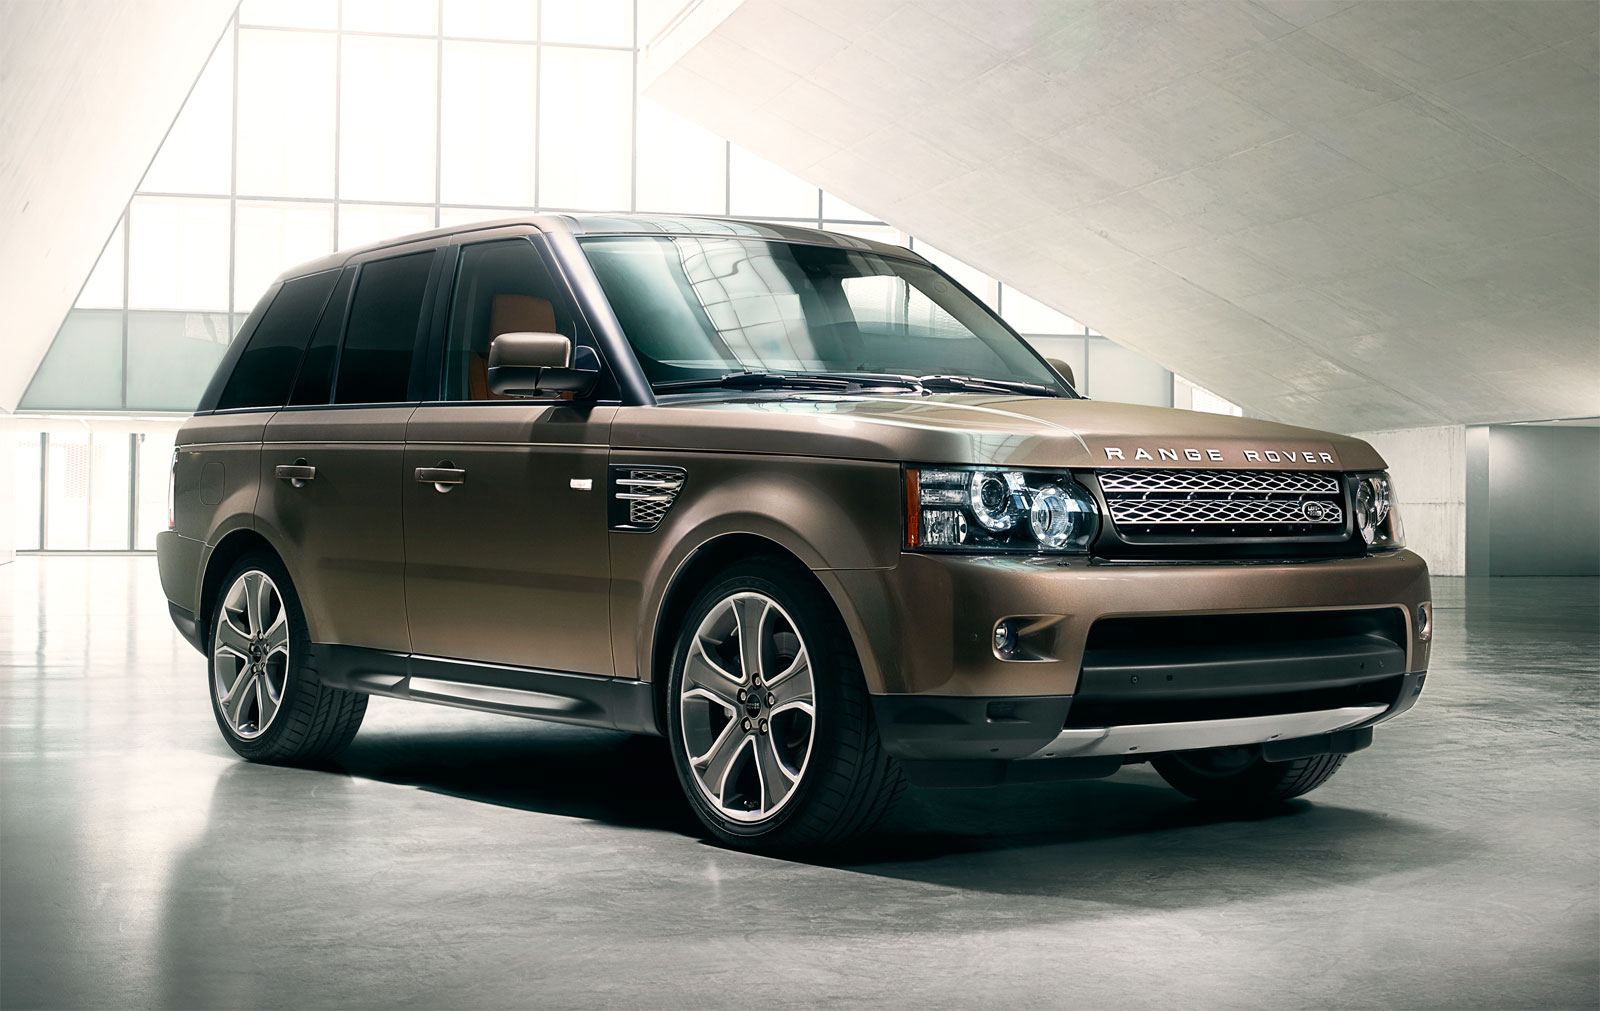 2012 land rover range rover sport information and photos zombiedrive rh zombdrive com